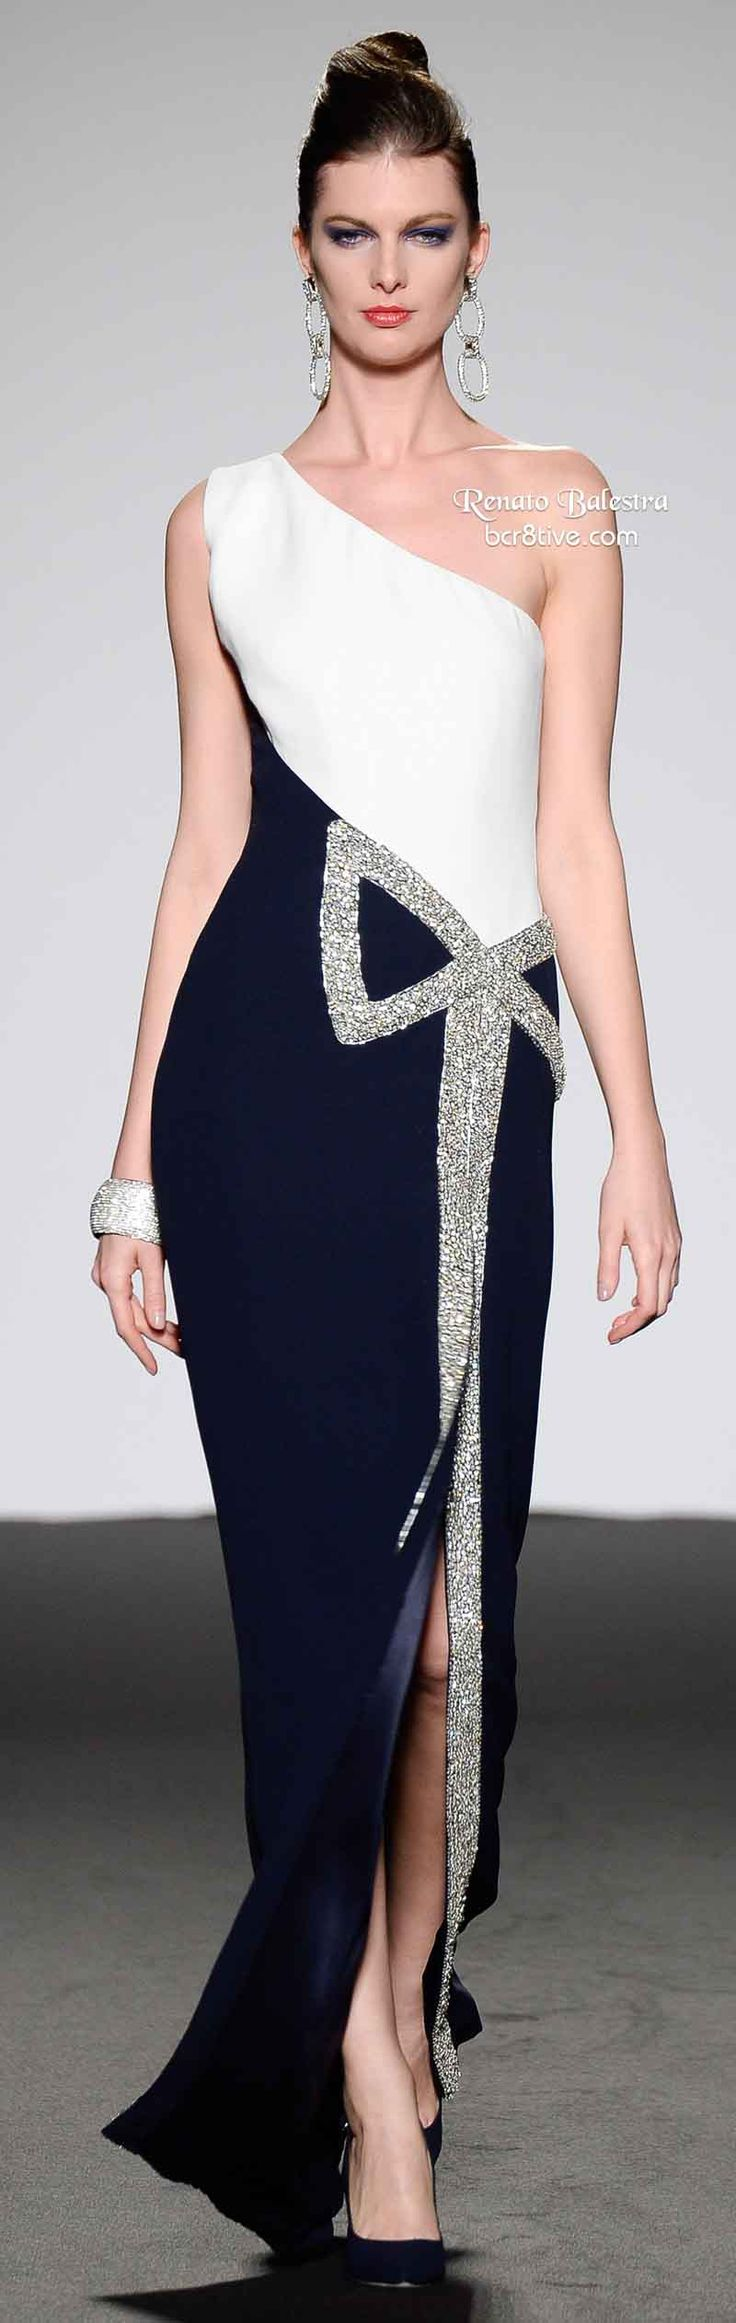 robe simple et chic, parfait pour cocktail party! Renato Balestra Spring 2014 Haute Couture